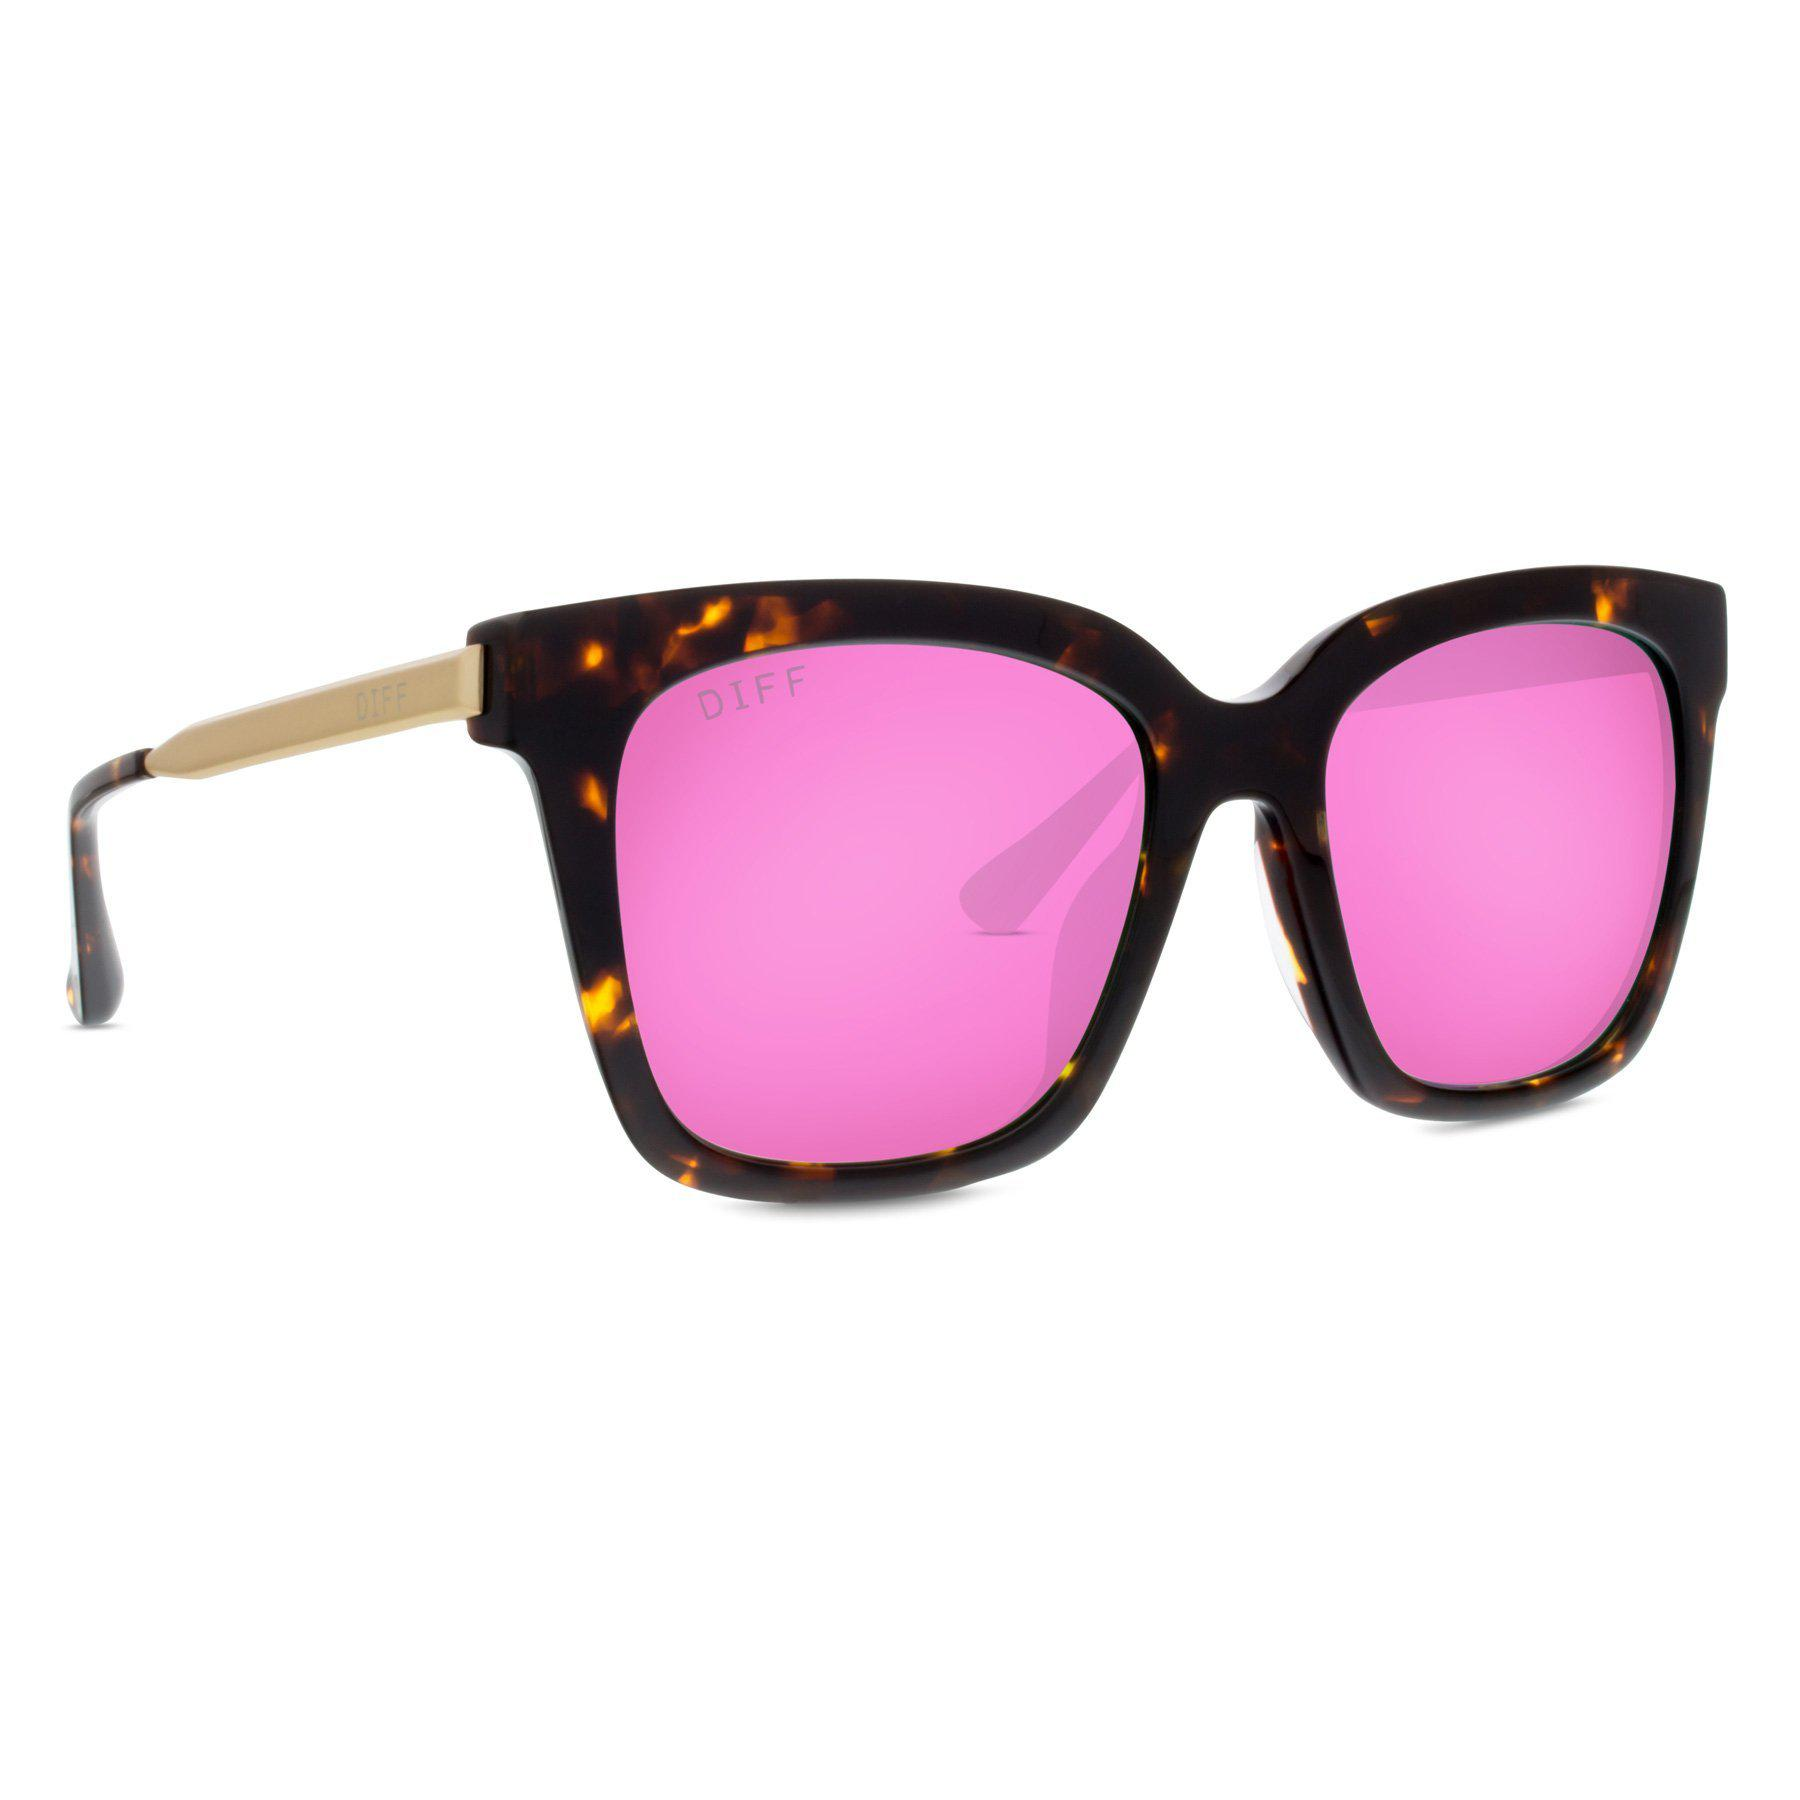 02a0b4de4a8 Lyst - DIFF Bella - Tortoise + Pink Mirror + Polarized in Pink